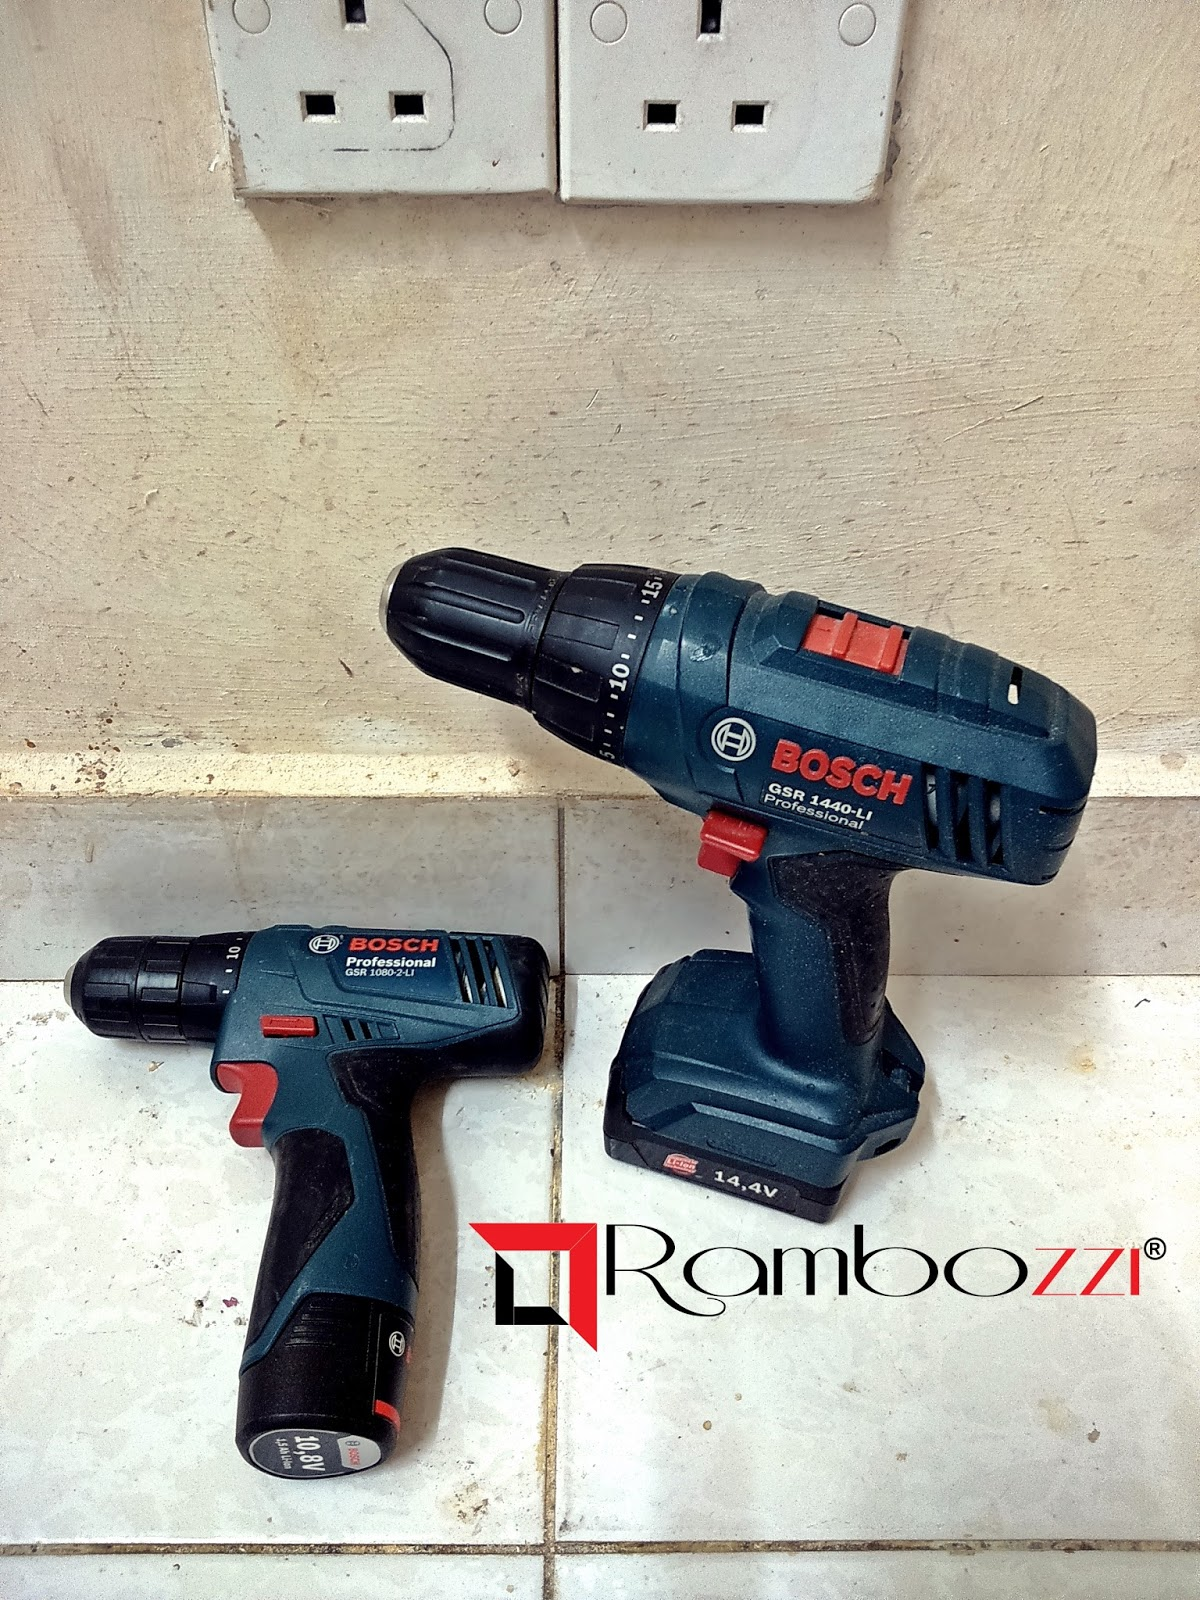 Rambozzi woodworking with love 3 39 power tools 39 asas - Cordless di design ...